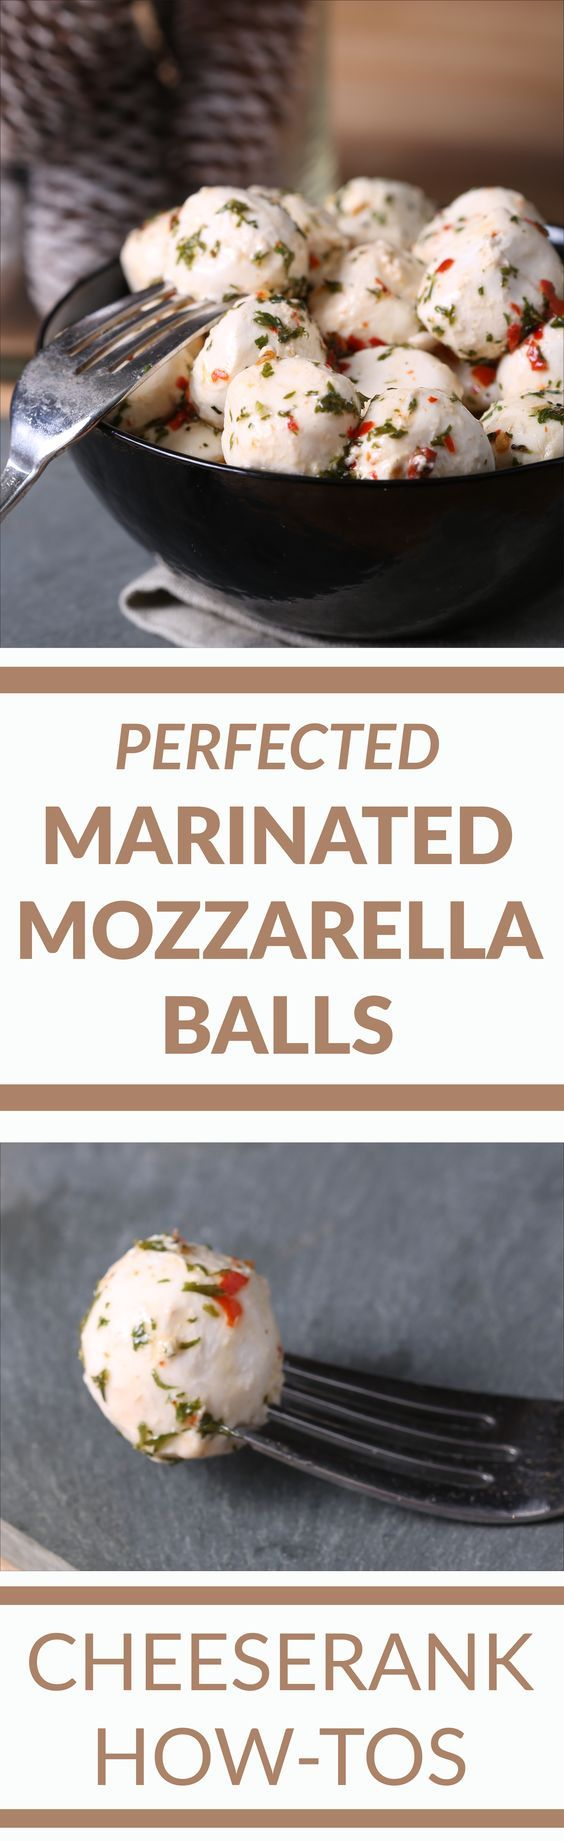 Marinated Mozzarella Balls: Mozzarella on its own is a delicious snack, and those little mozzarella balls are a glorious sight on any party tray or platter. INGREDIENTS1 ½ cups olive oil1 lb Ciliegne (cherry) sized mozzarella balls2 Tbs red pepper flakes1 tsp freshly ground black pepper1 Tbs dried oregano1 Tbs dried parsley2 cloves fresh garlic, diced